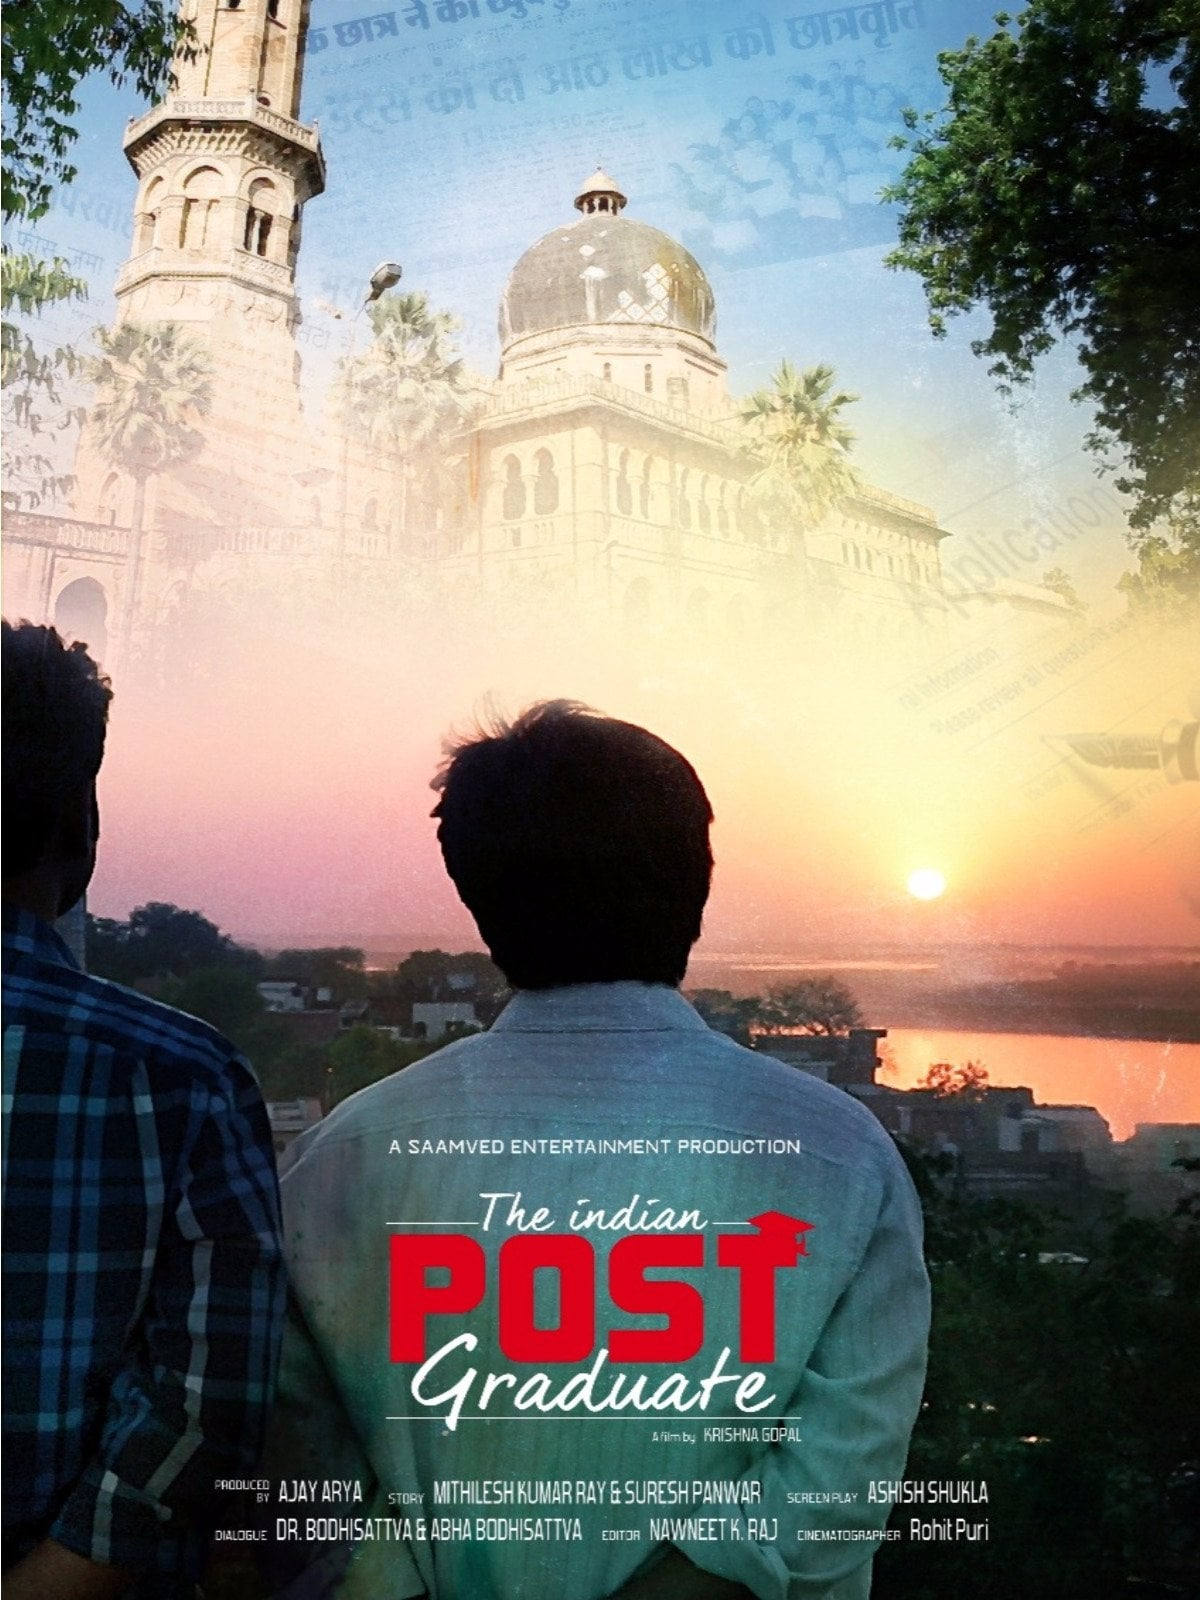 The Indian Post Graduate (2018)